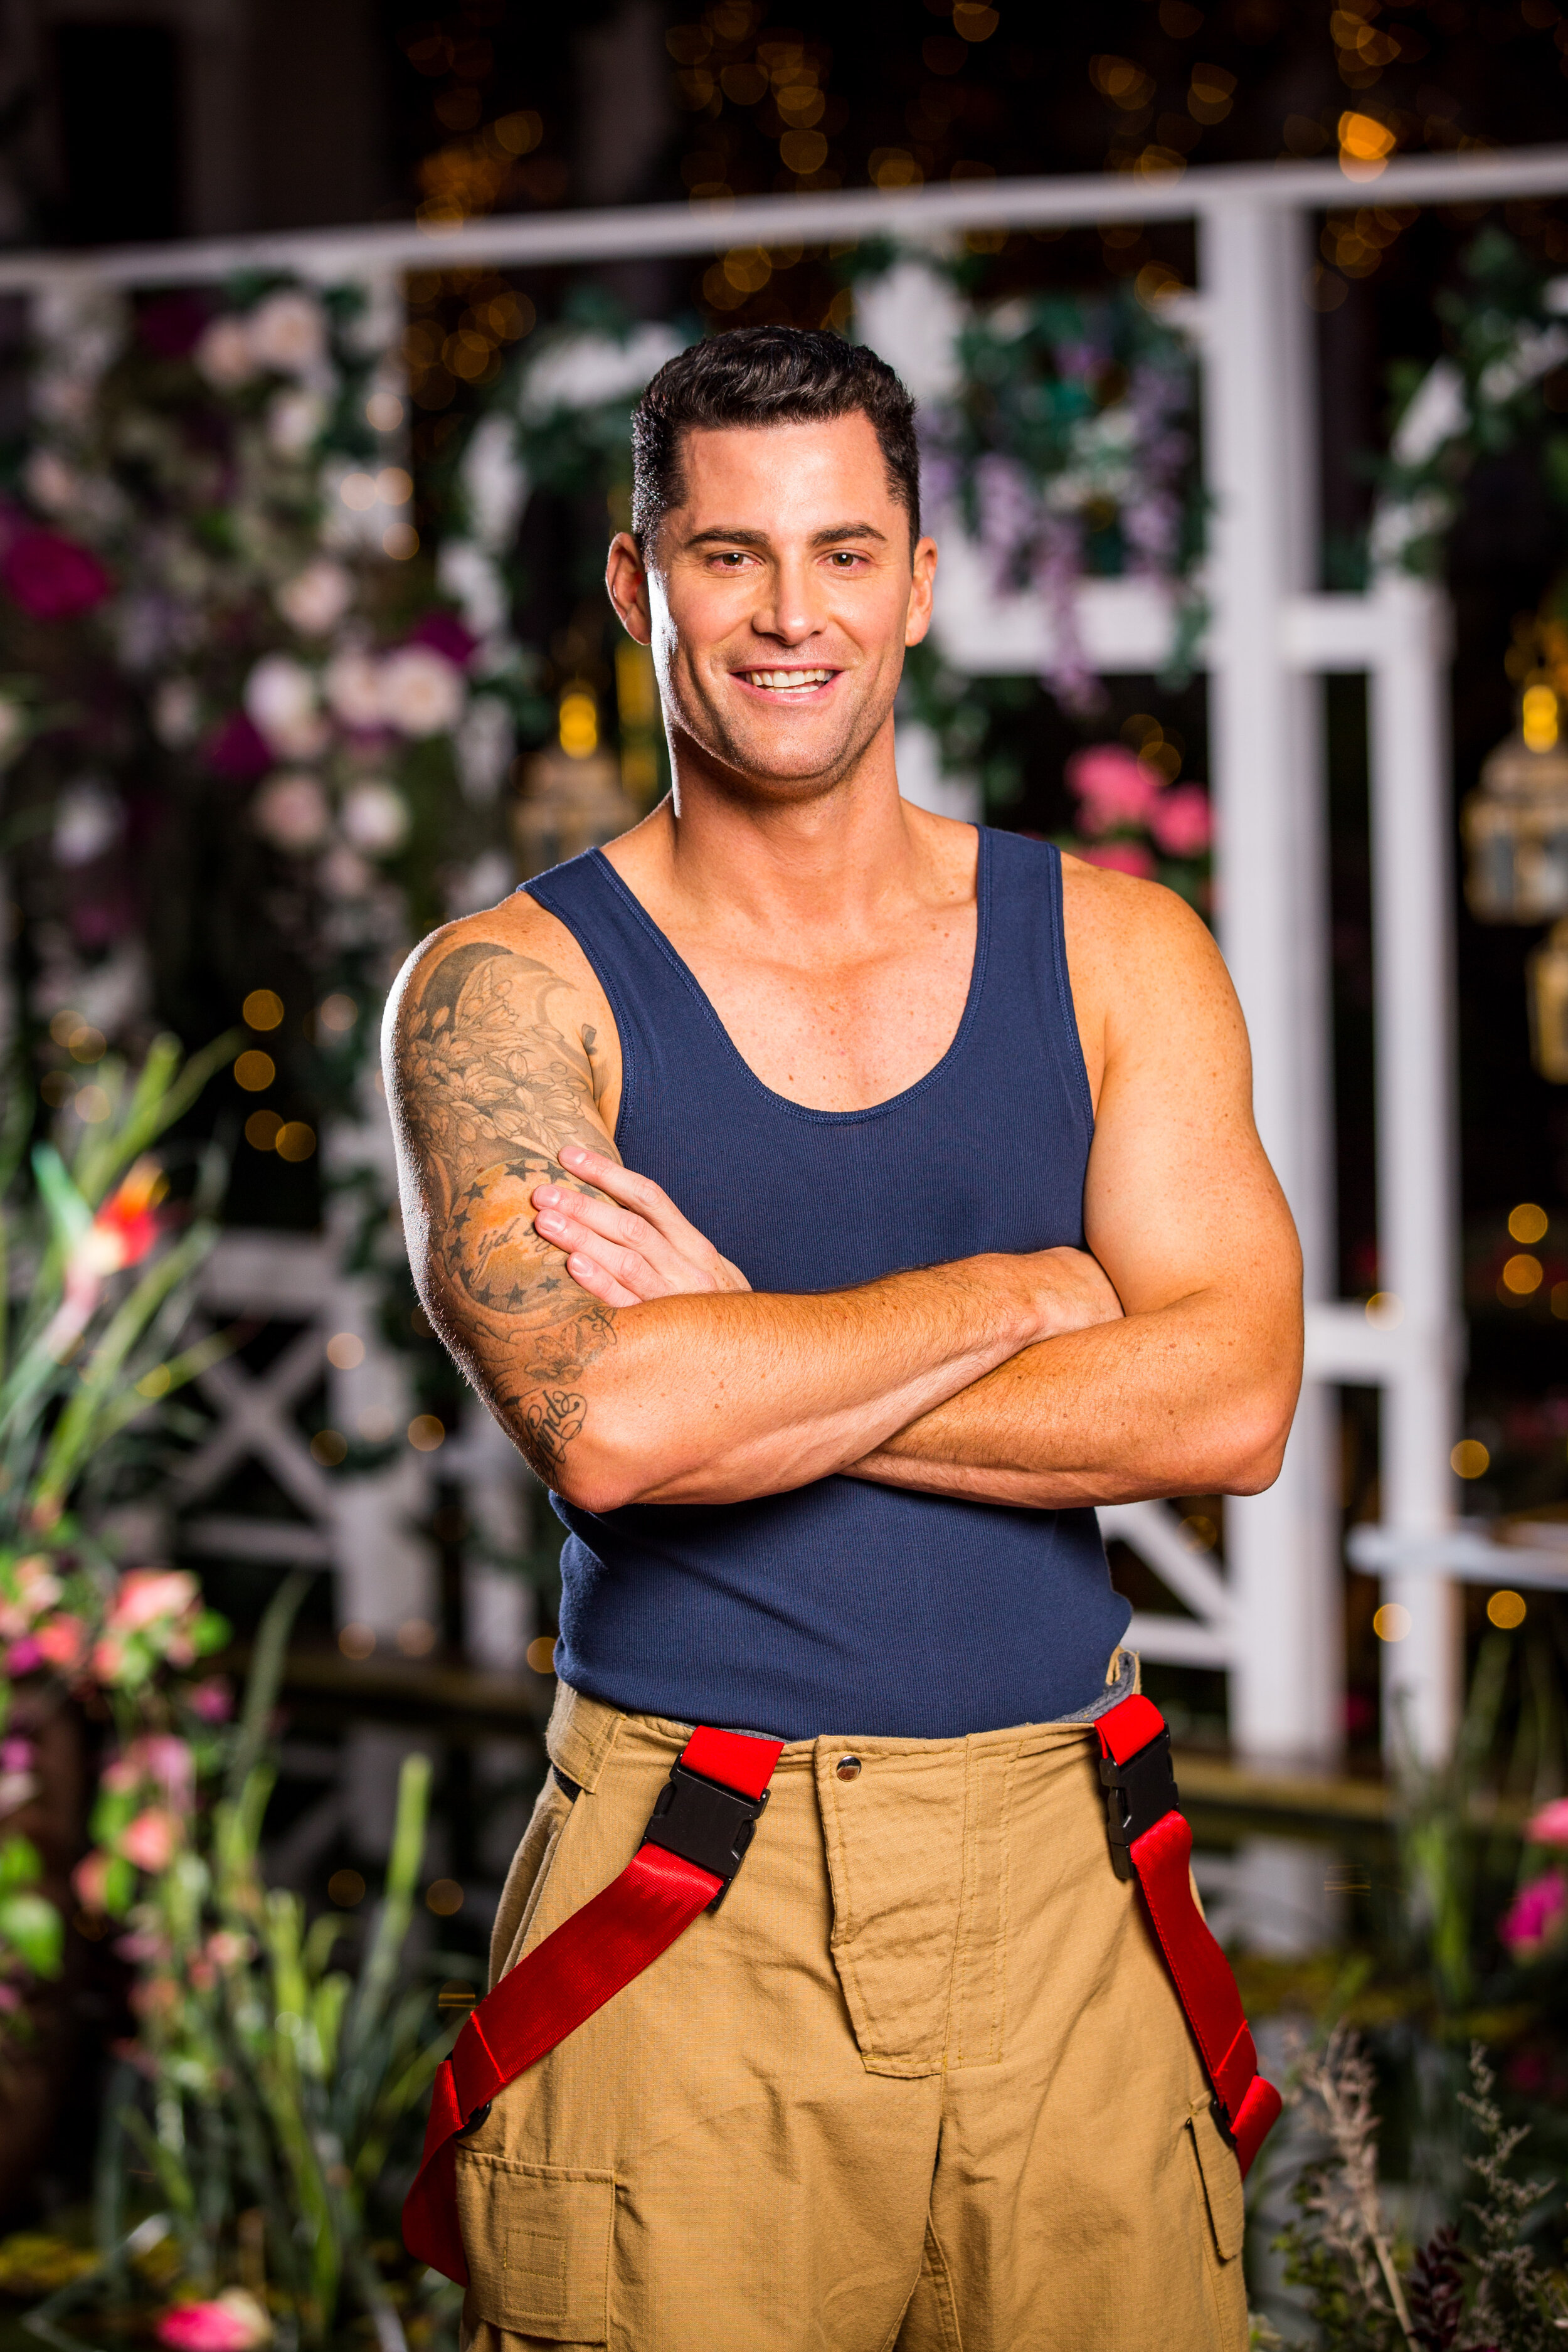 Angie Survivor trailer | firefighter jamie is introduced to angie on the